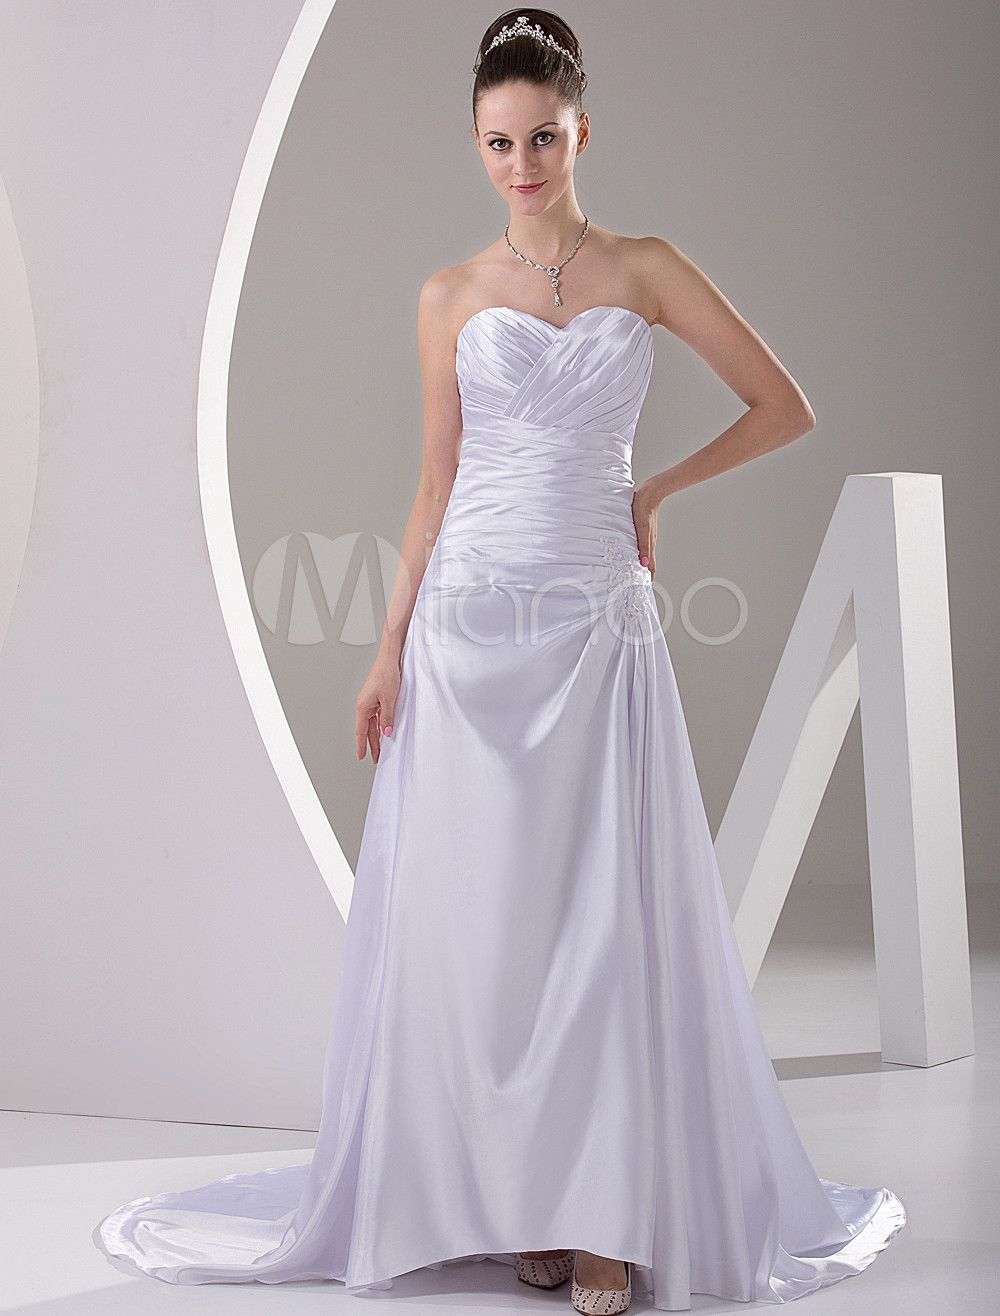 Wedding dresses with train  Milanoo Ltd Wedding Dresses Ivory Sweet Heart Satin Sweep